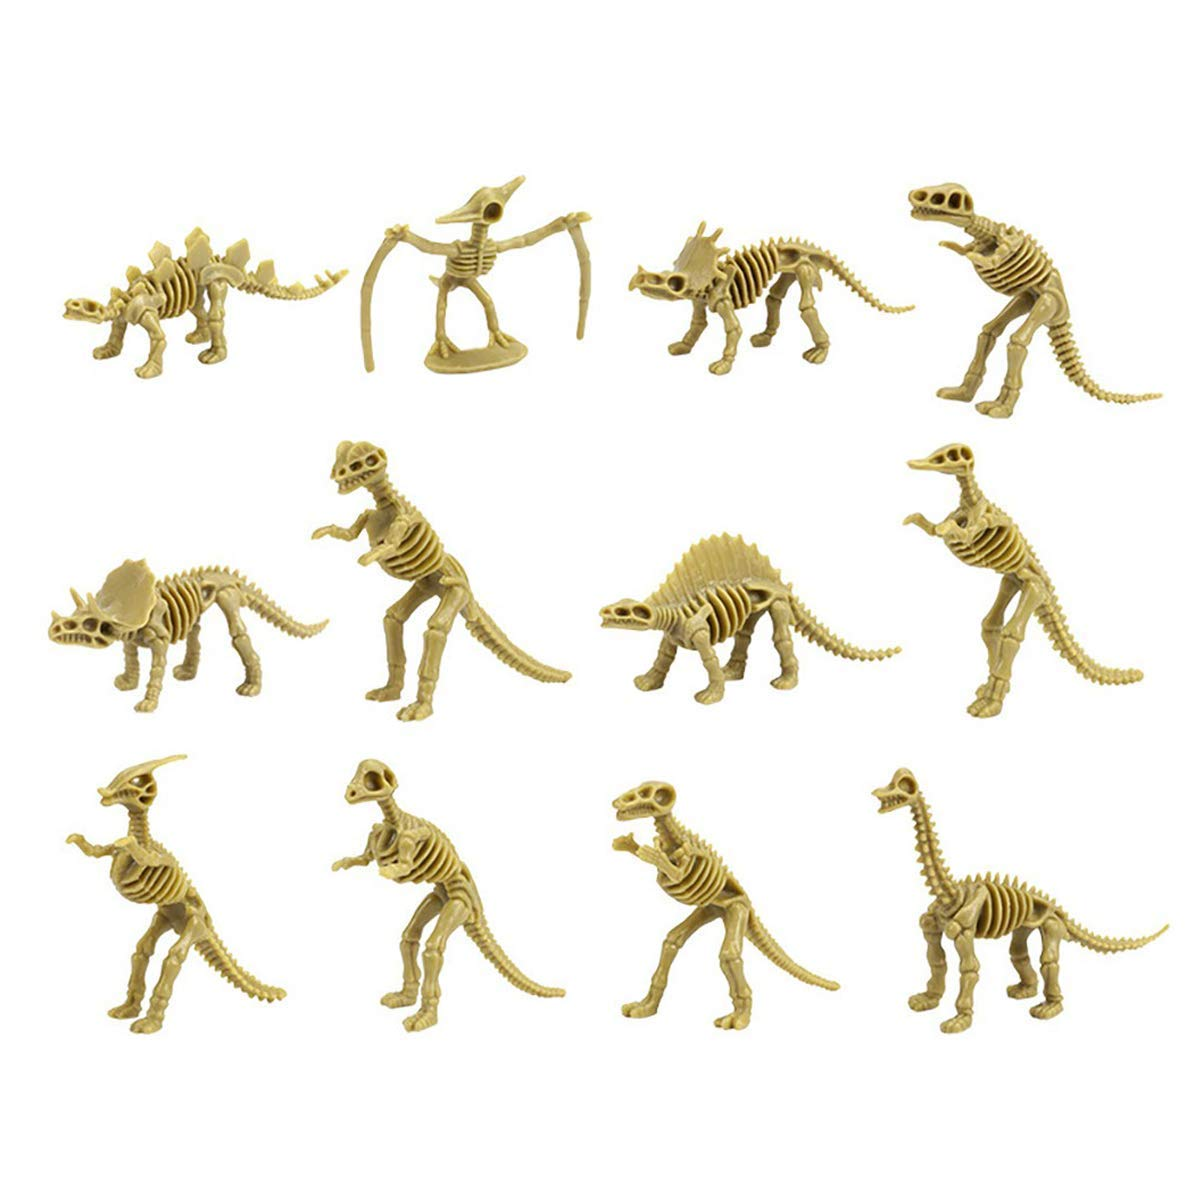 Party 6 to 7 Inch Figures -12 Pieces Girls for Kids Kicko Assorted Dinosaur Fossil Skeleton 3D Toys Boys and Prizes Pretend Play Time Games